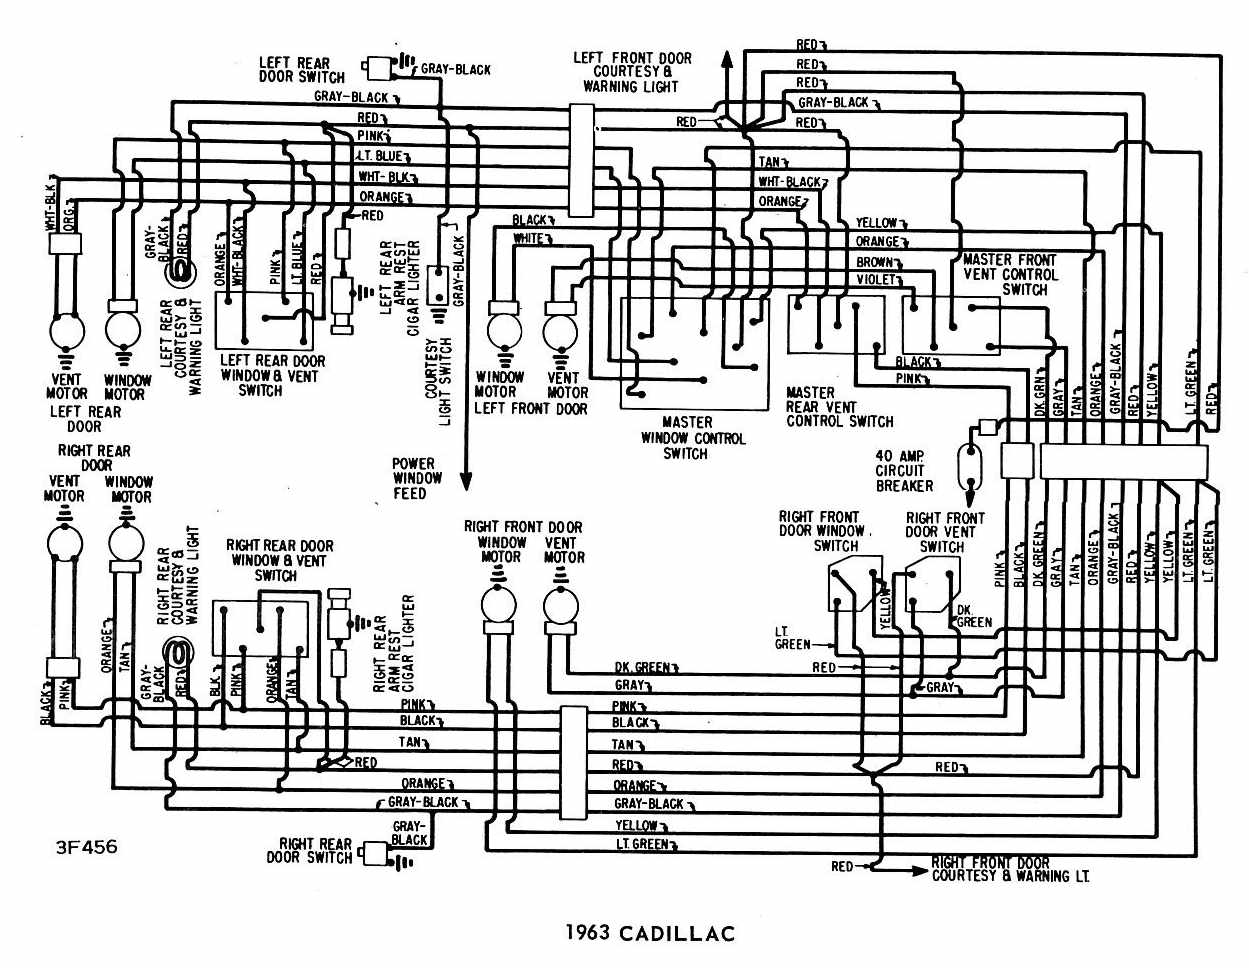 radio wire diagram 2001 aztek. radio. free wiring diagrams, Wiring diagram